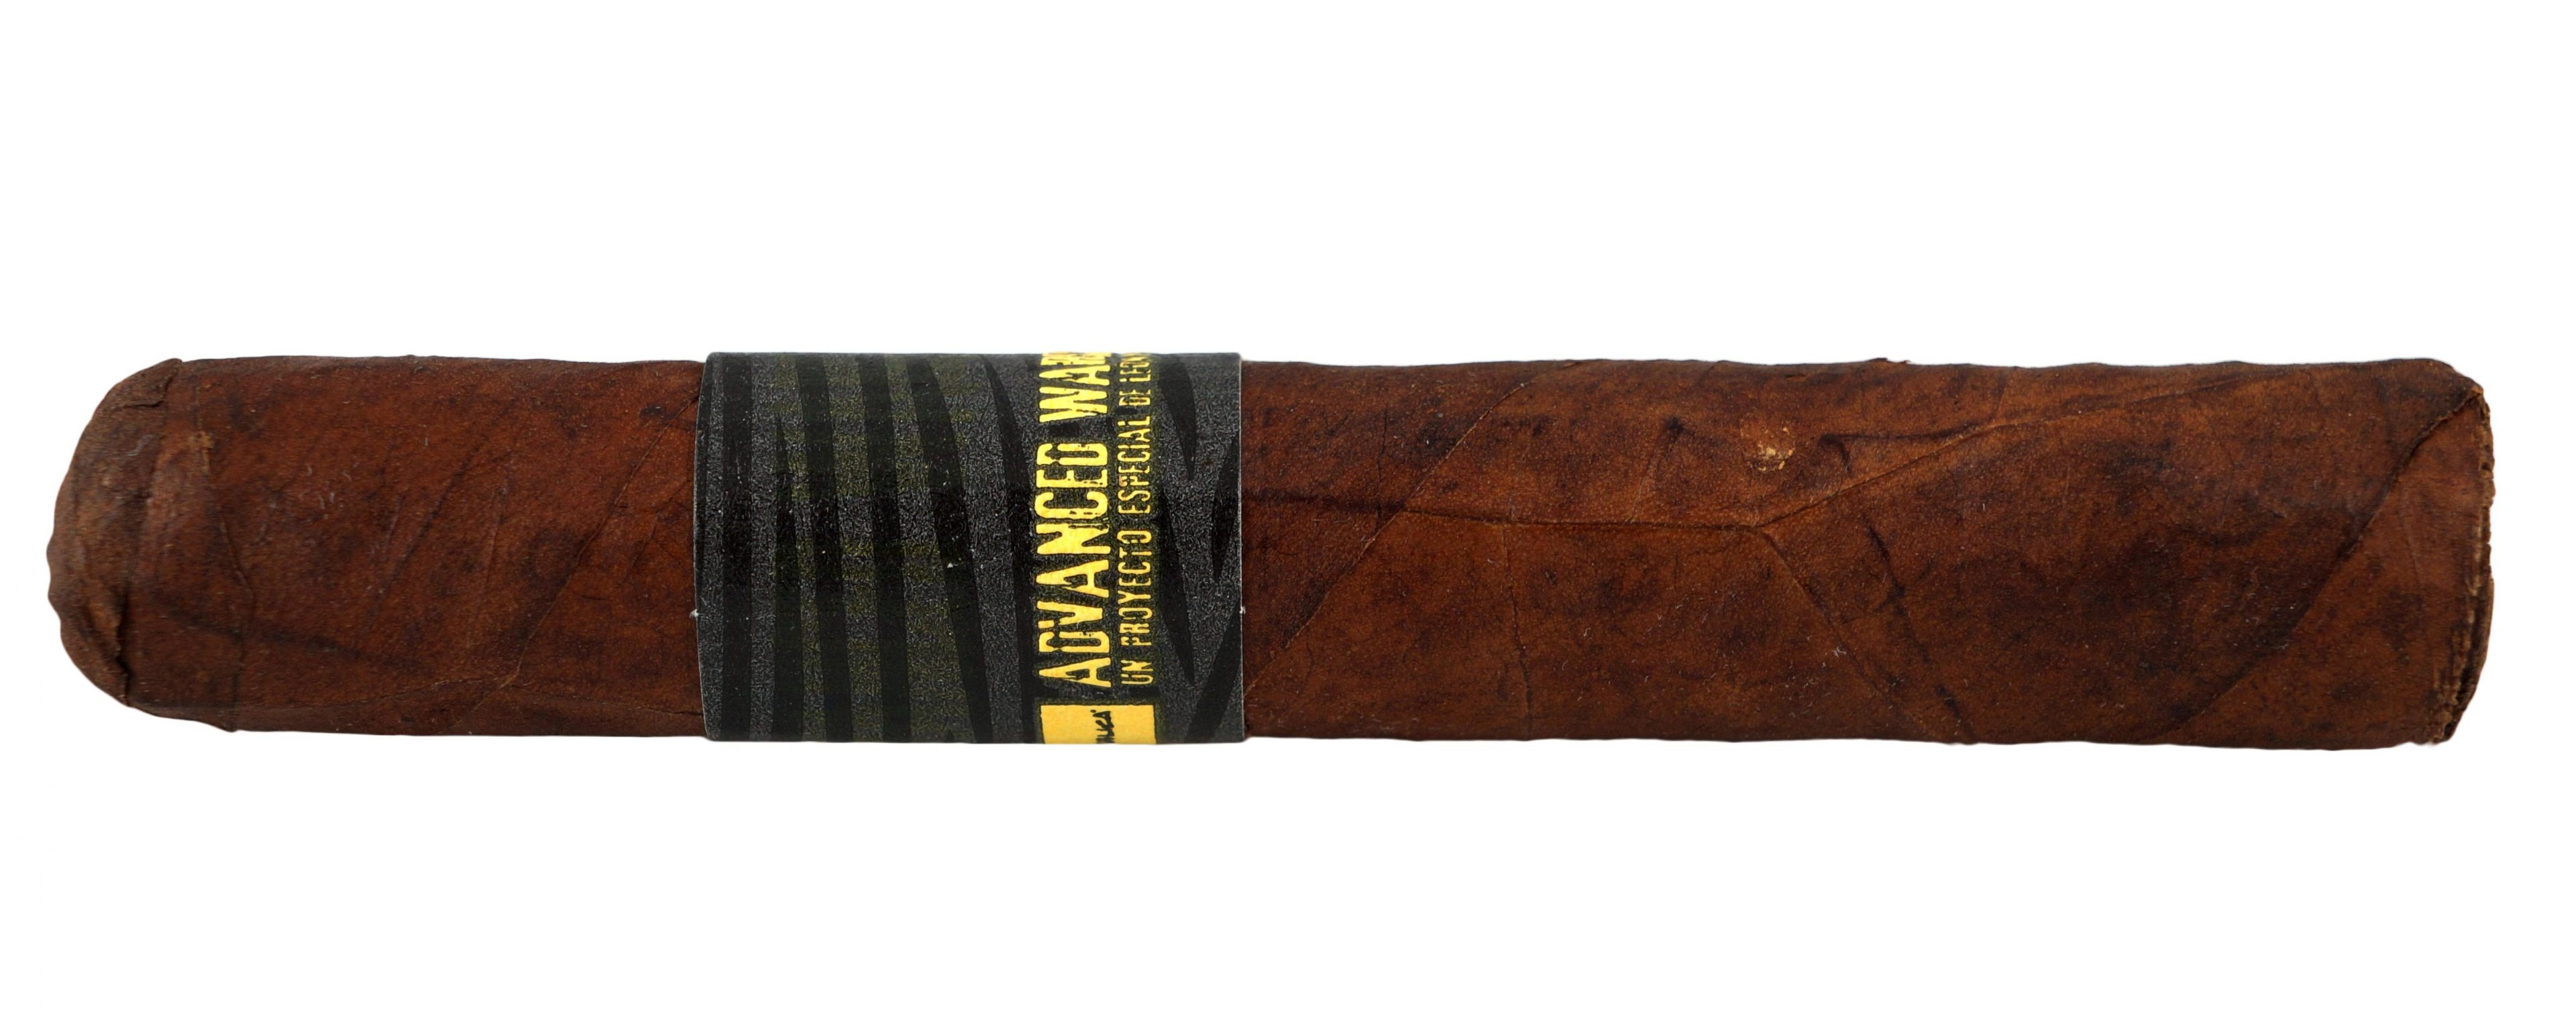 Blind Cigar Review: Viva Republica | Advanced Warfare Petit Corona